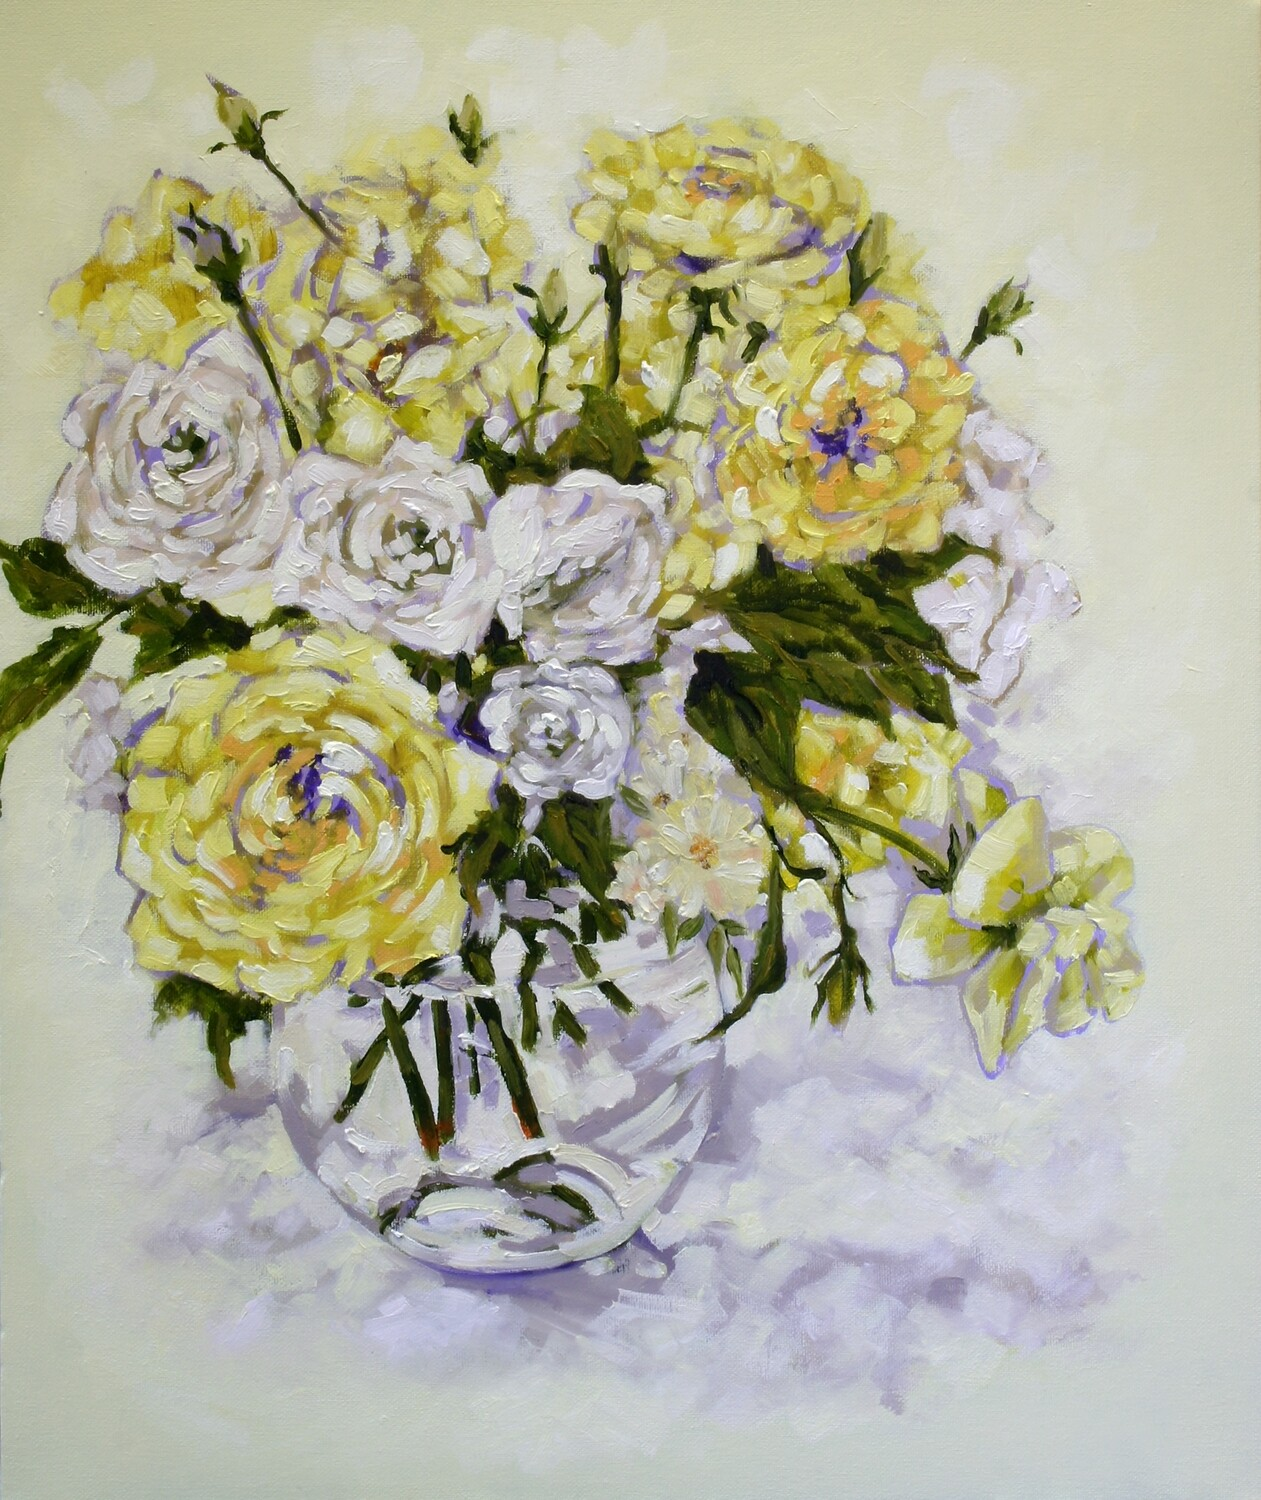 Yellow and White Roses - Still Life Original Art on Canvas